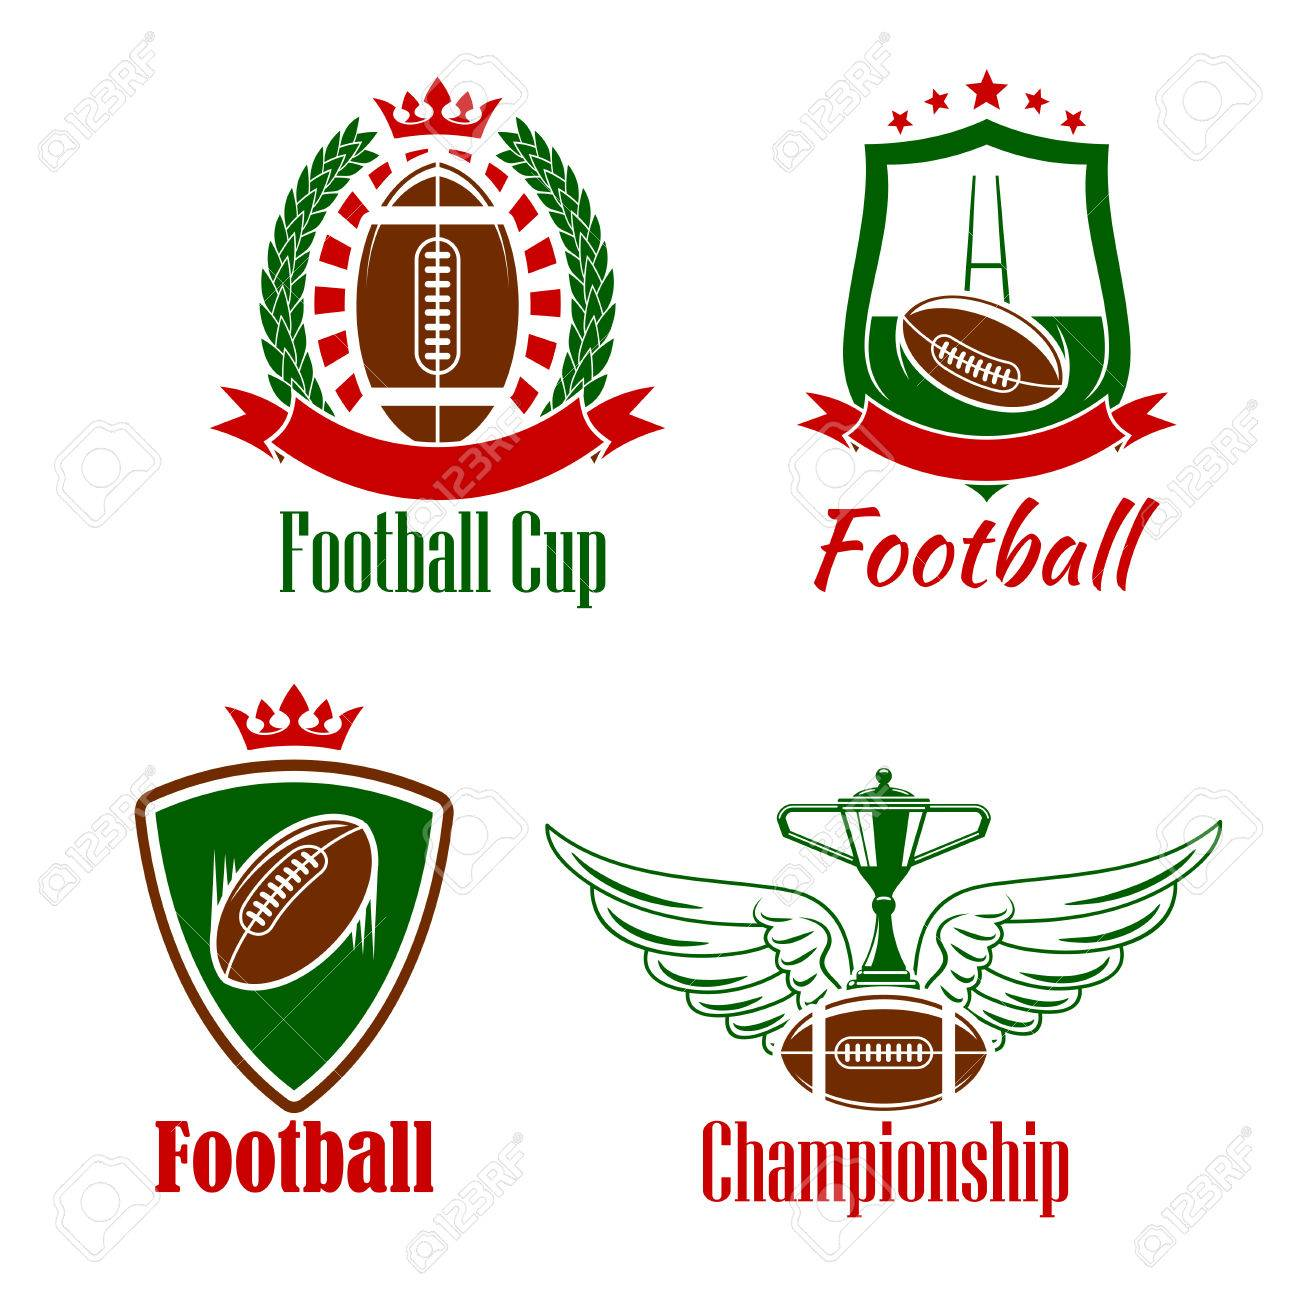 Retro Sporting Symbols For Rugby Championship Or Sport Club Design And Gate Symbol With Winner Trophy Cup Stands On Winged Ball Heraldic Shields Laurel Wreath